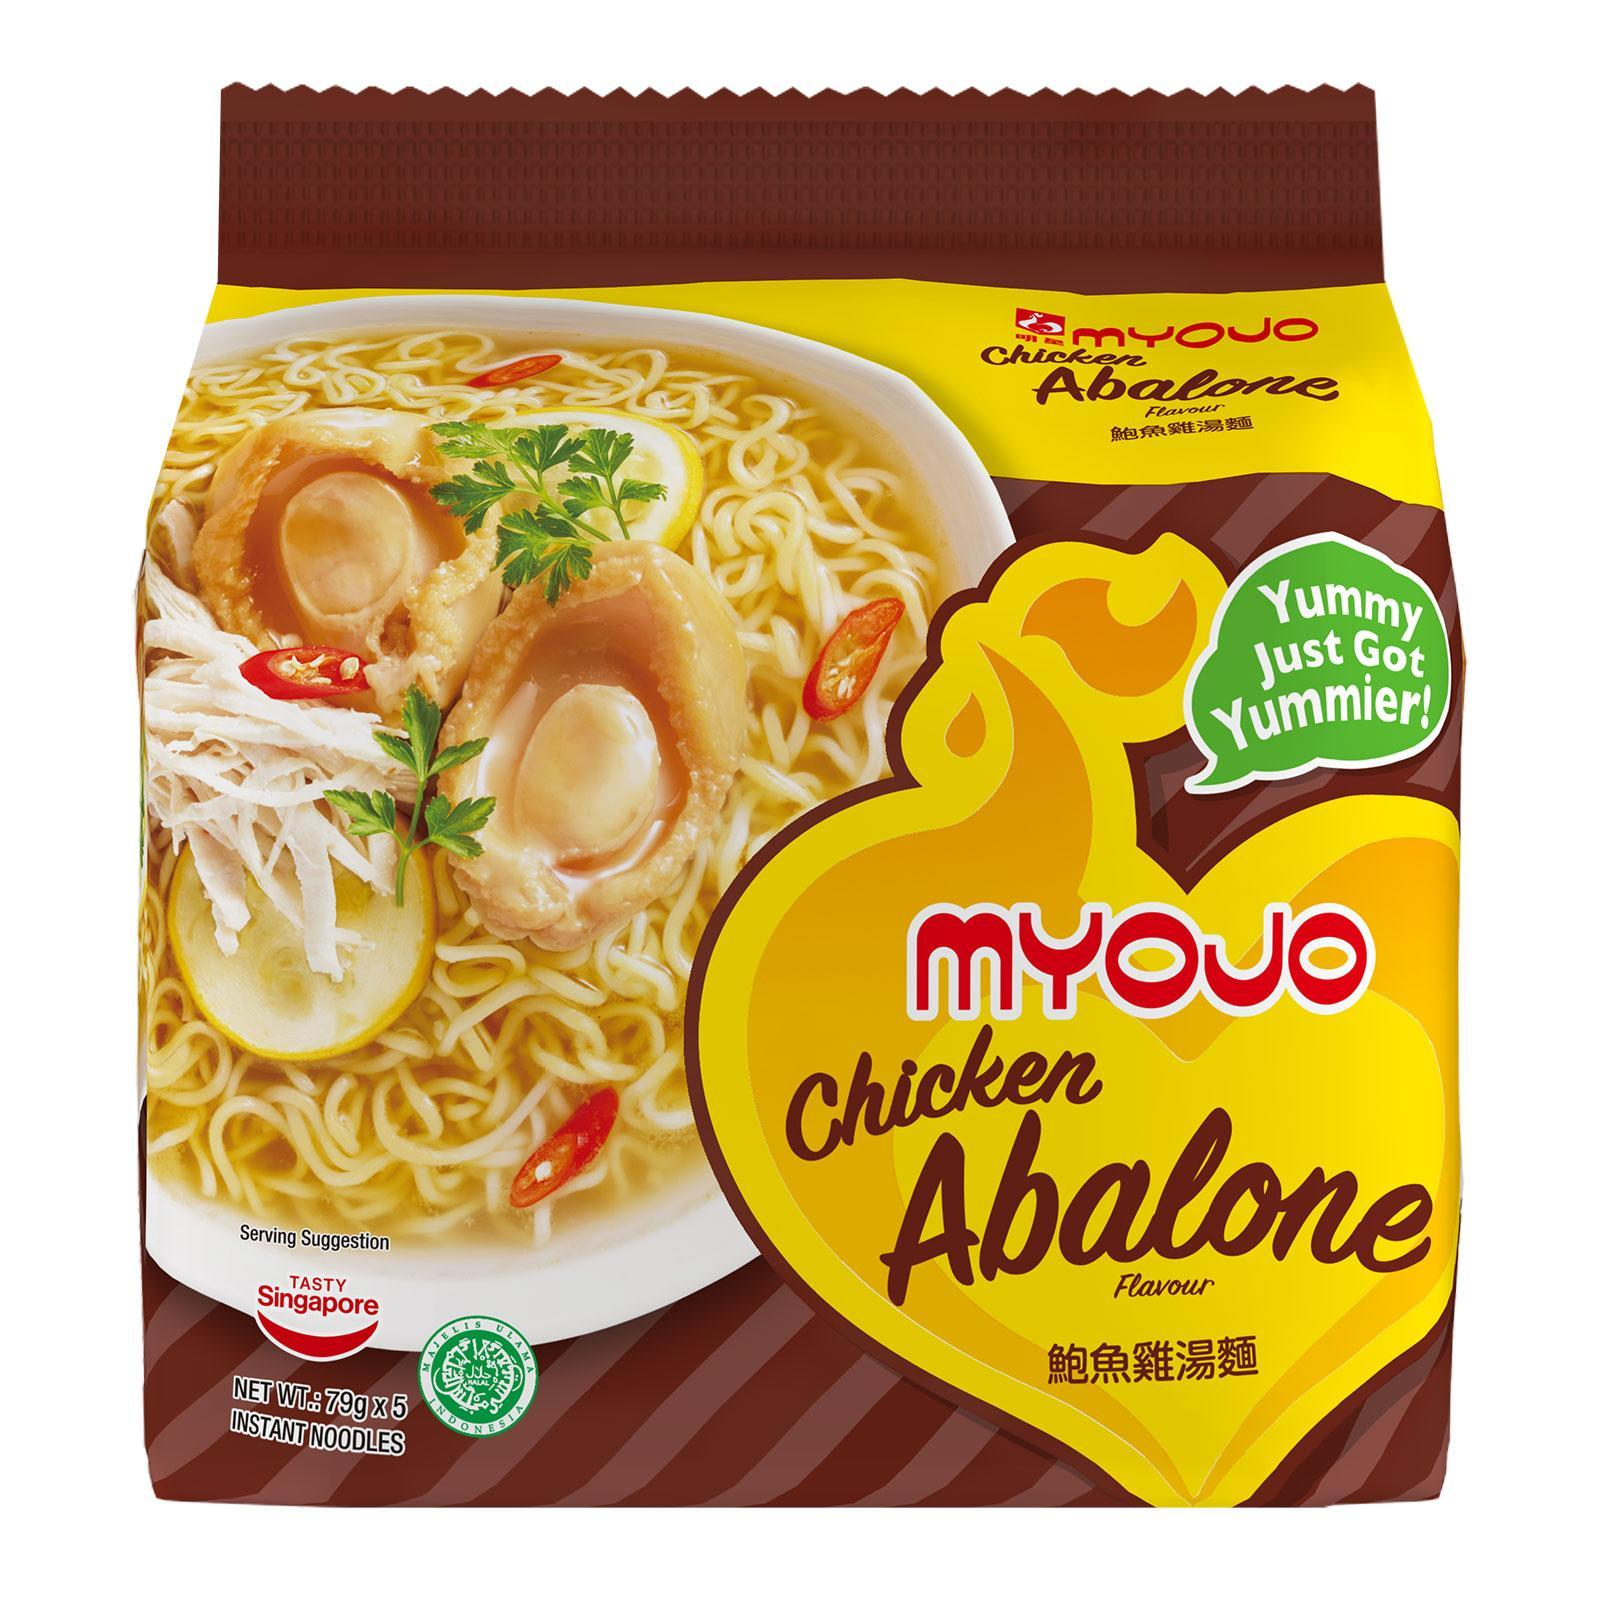 Myojo Chicken Abalone Flavoured Instant Noodles By Redmart.